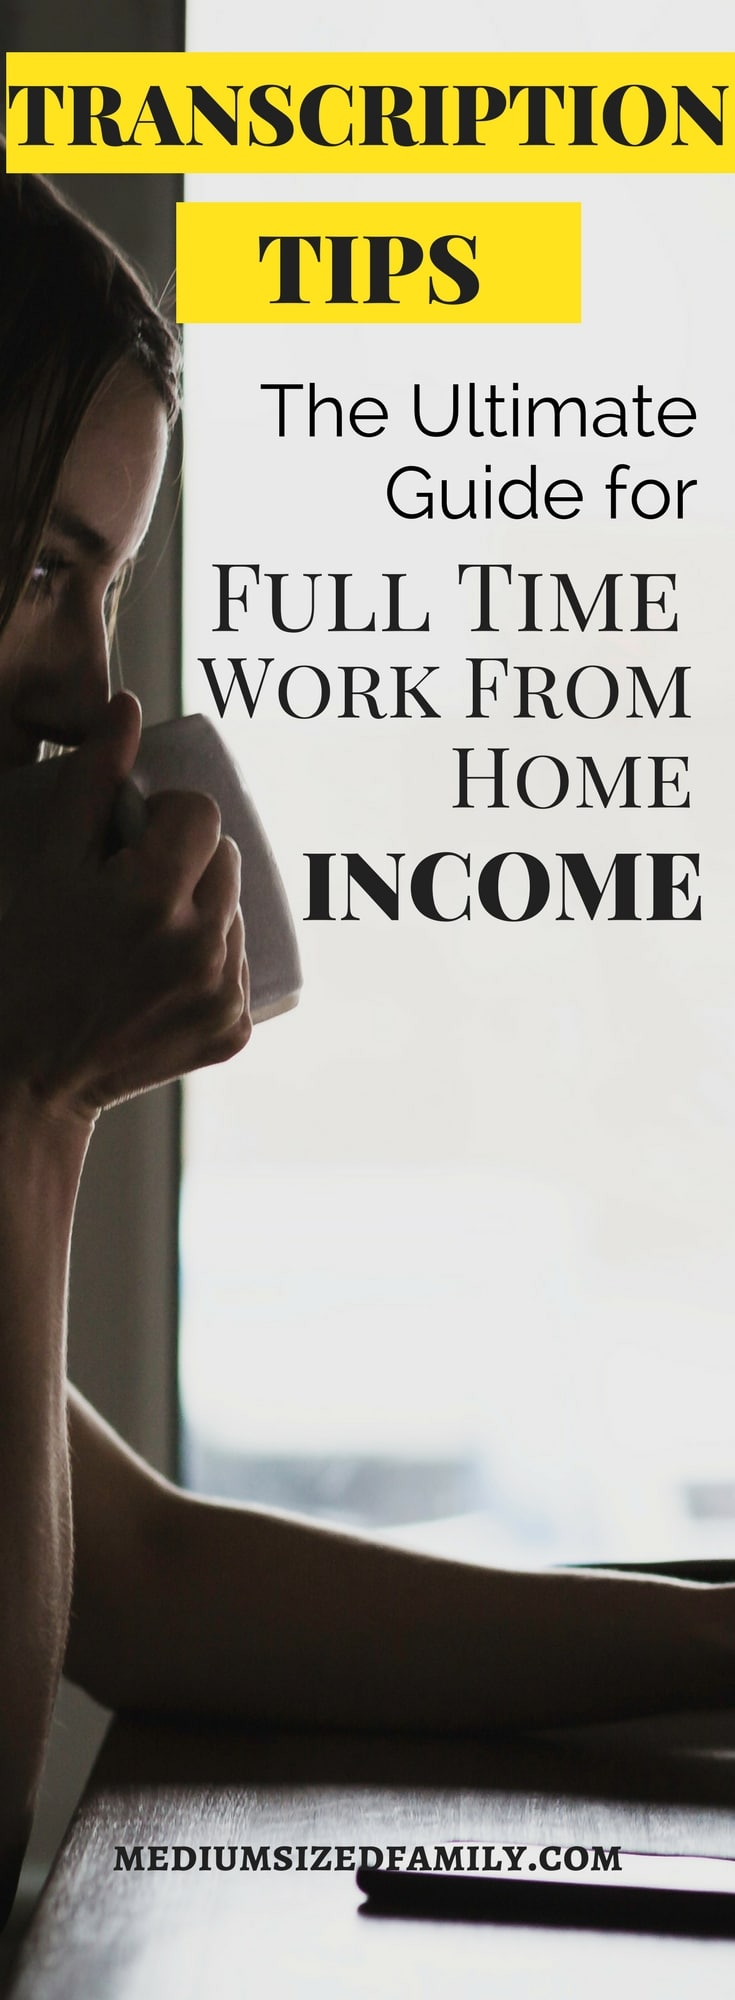 Get transcription tips that will help you make a full time income from a work at home job.